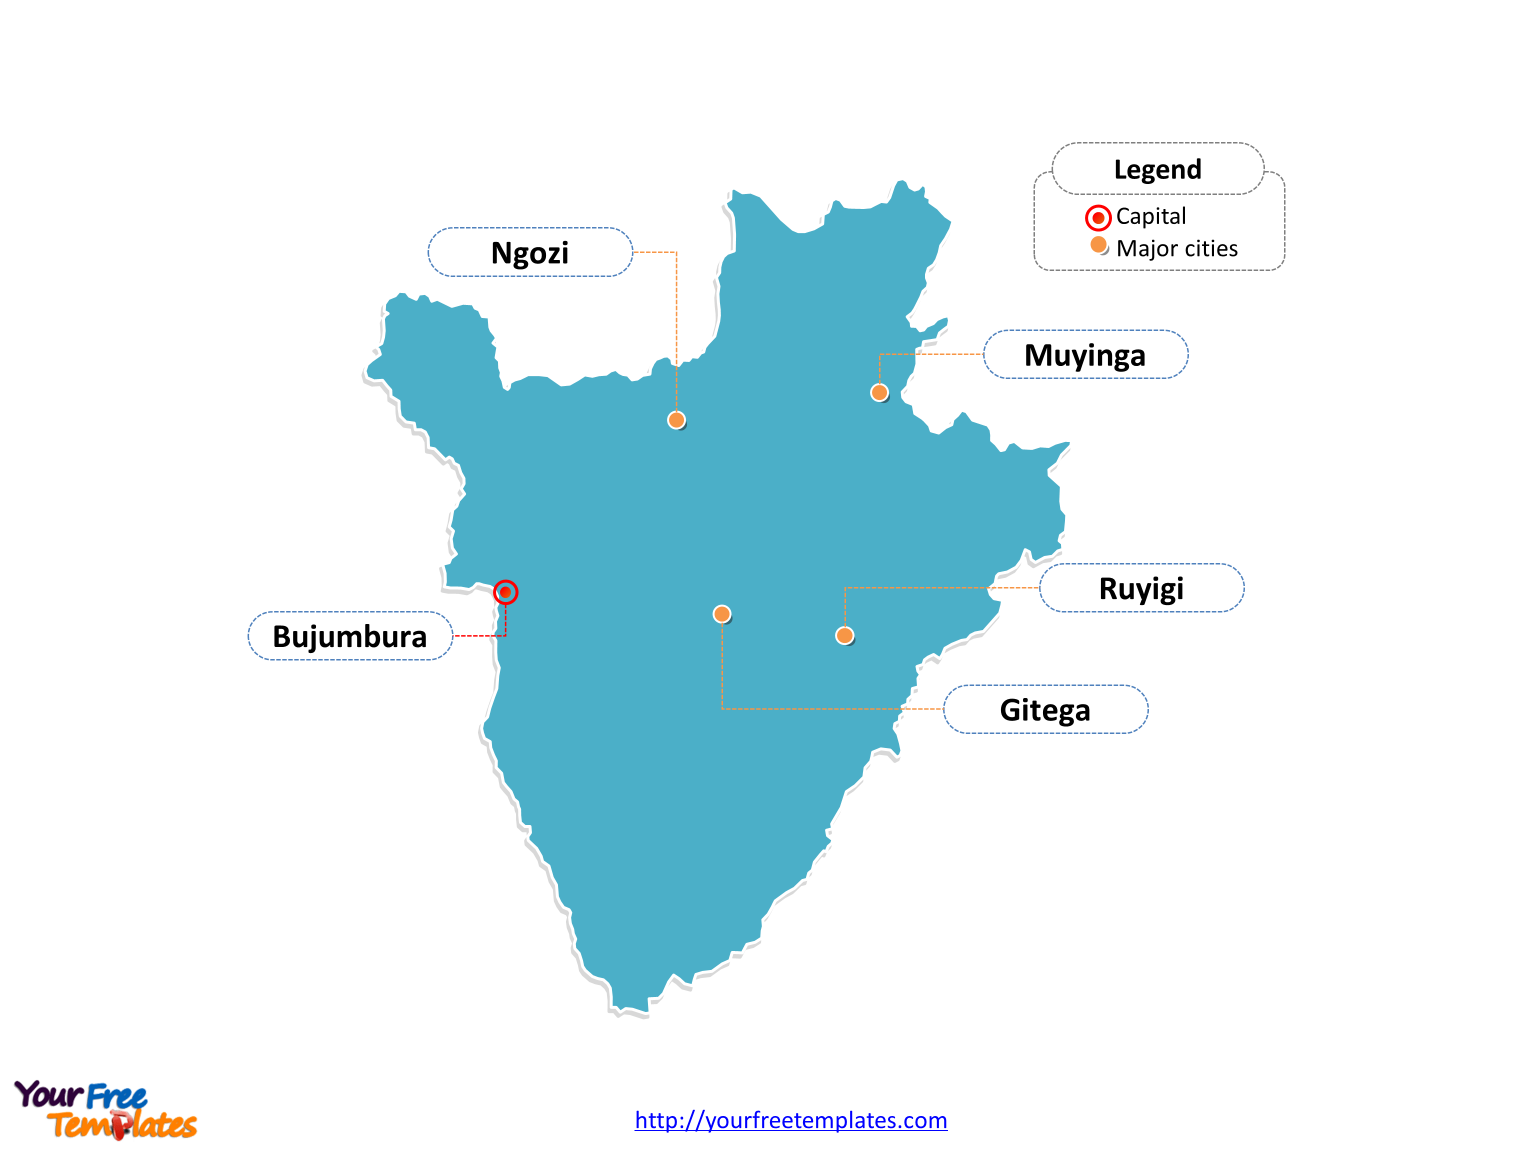 Burundi map labeled with cities